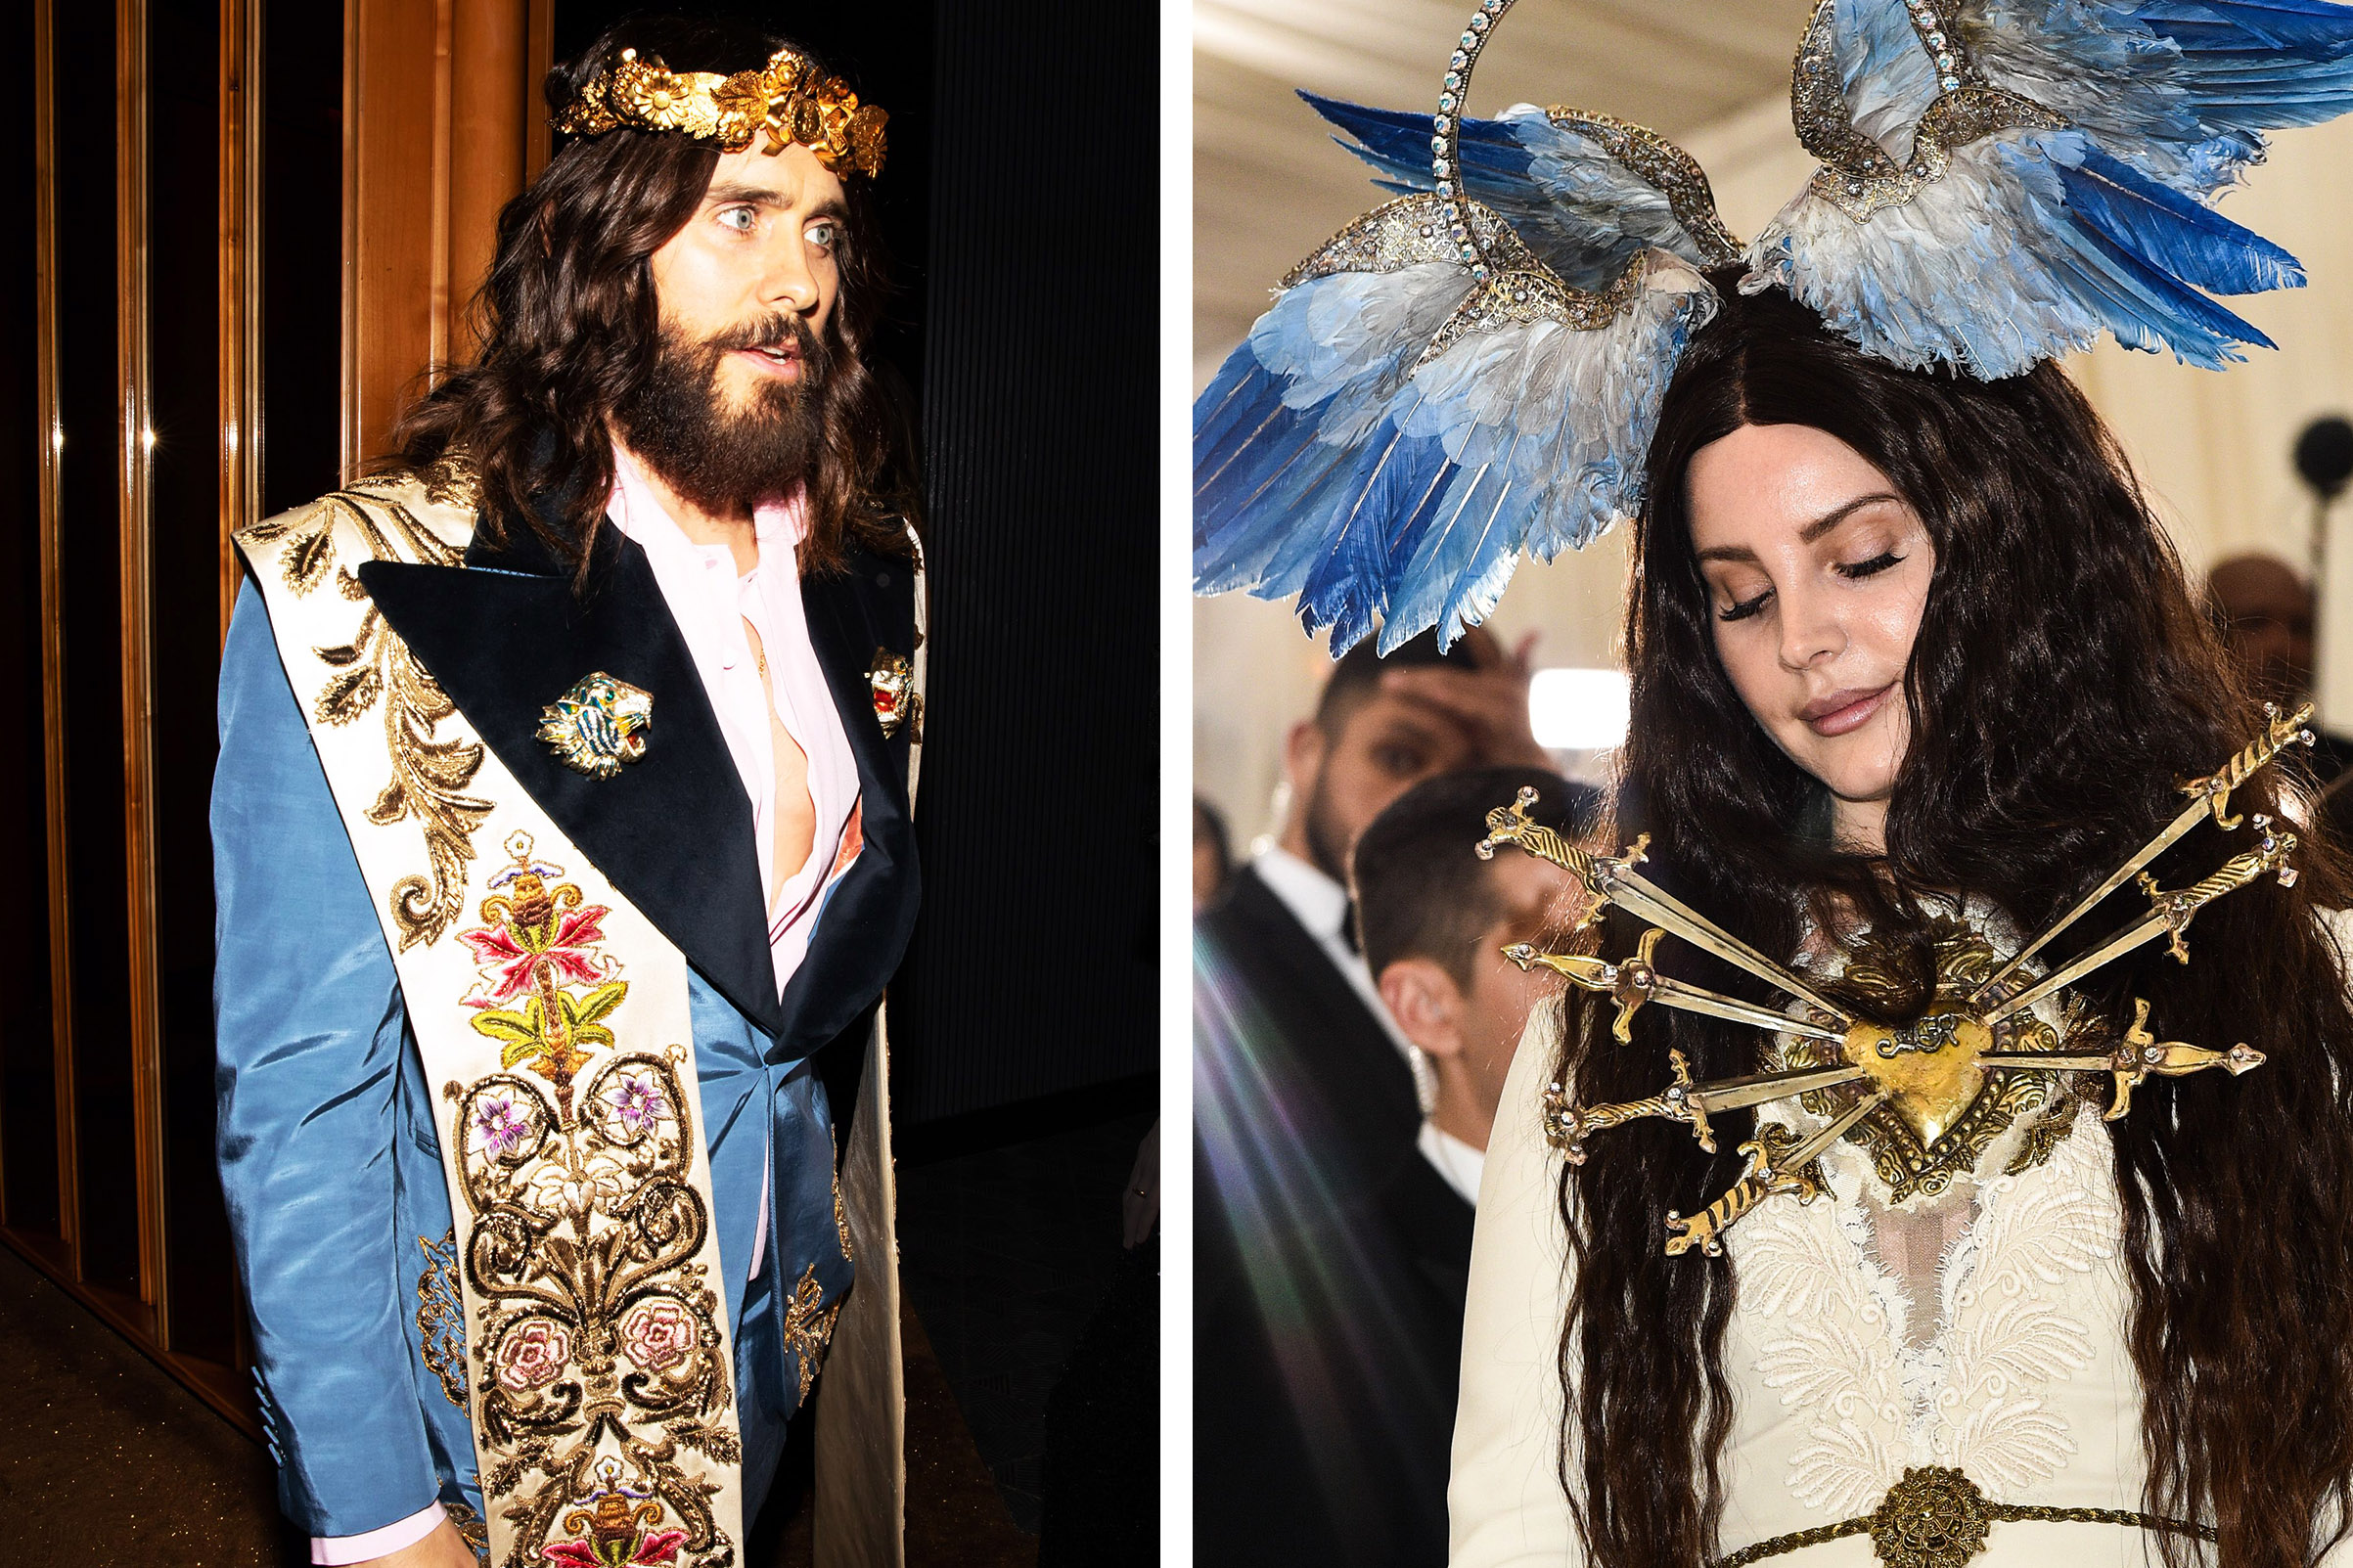 Jared Leto and Lana Del Rey